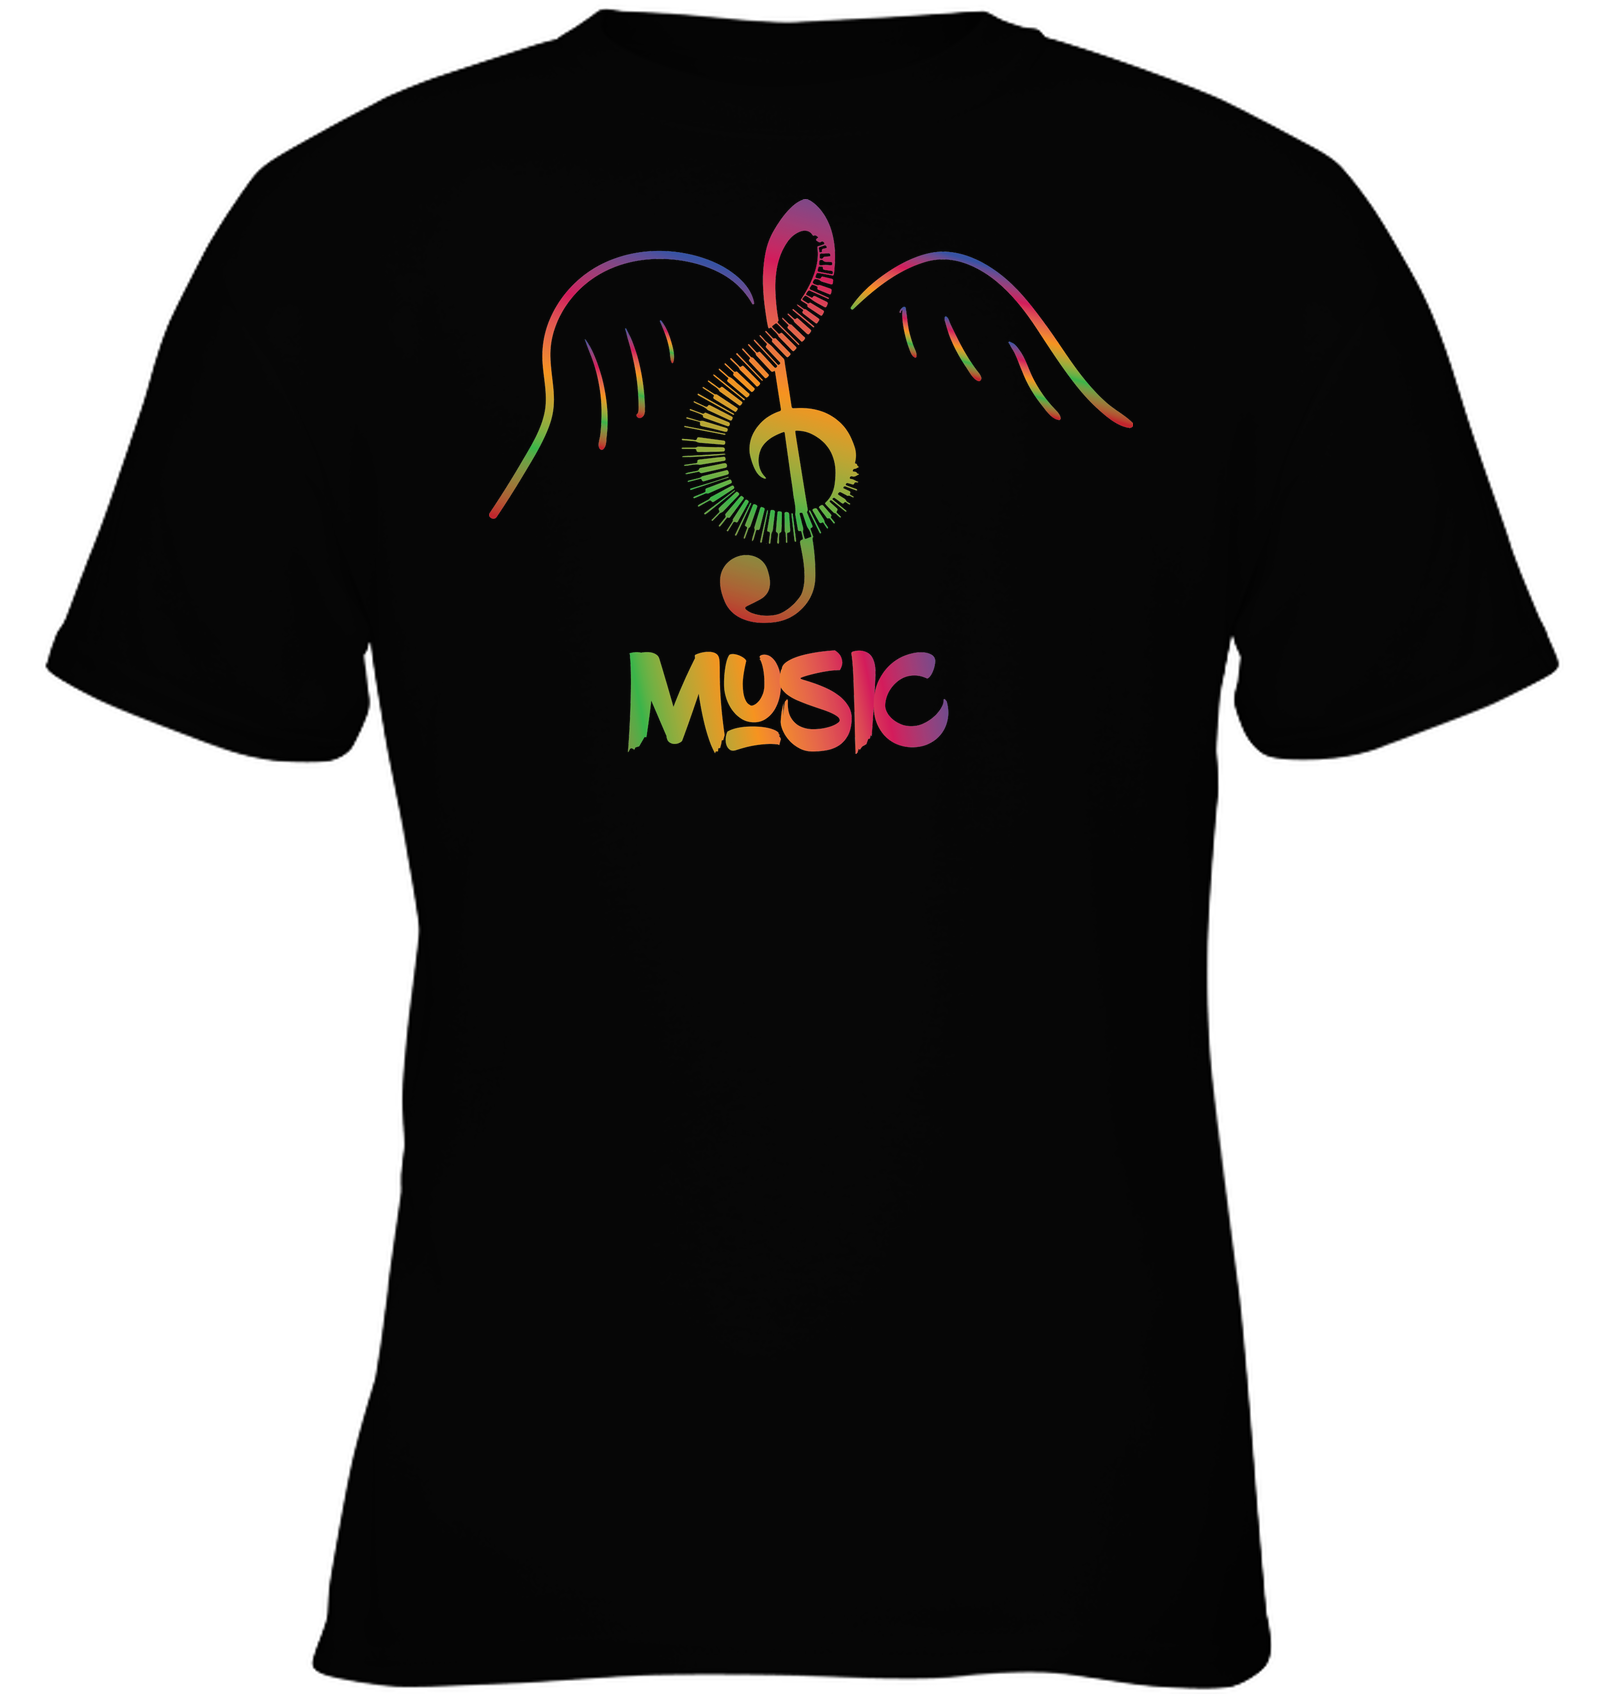 Musical Wings - Gildan Youth Short Sleeve T-Shirt